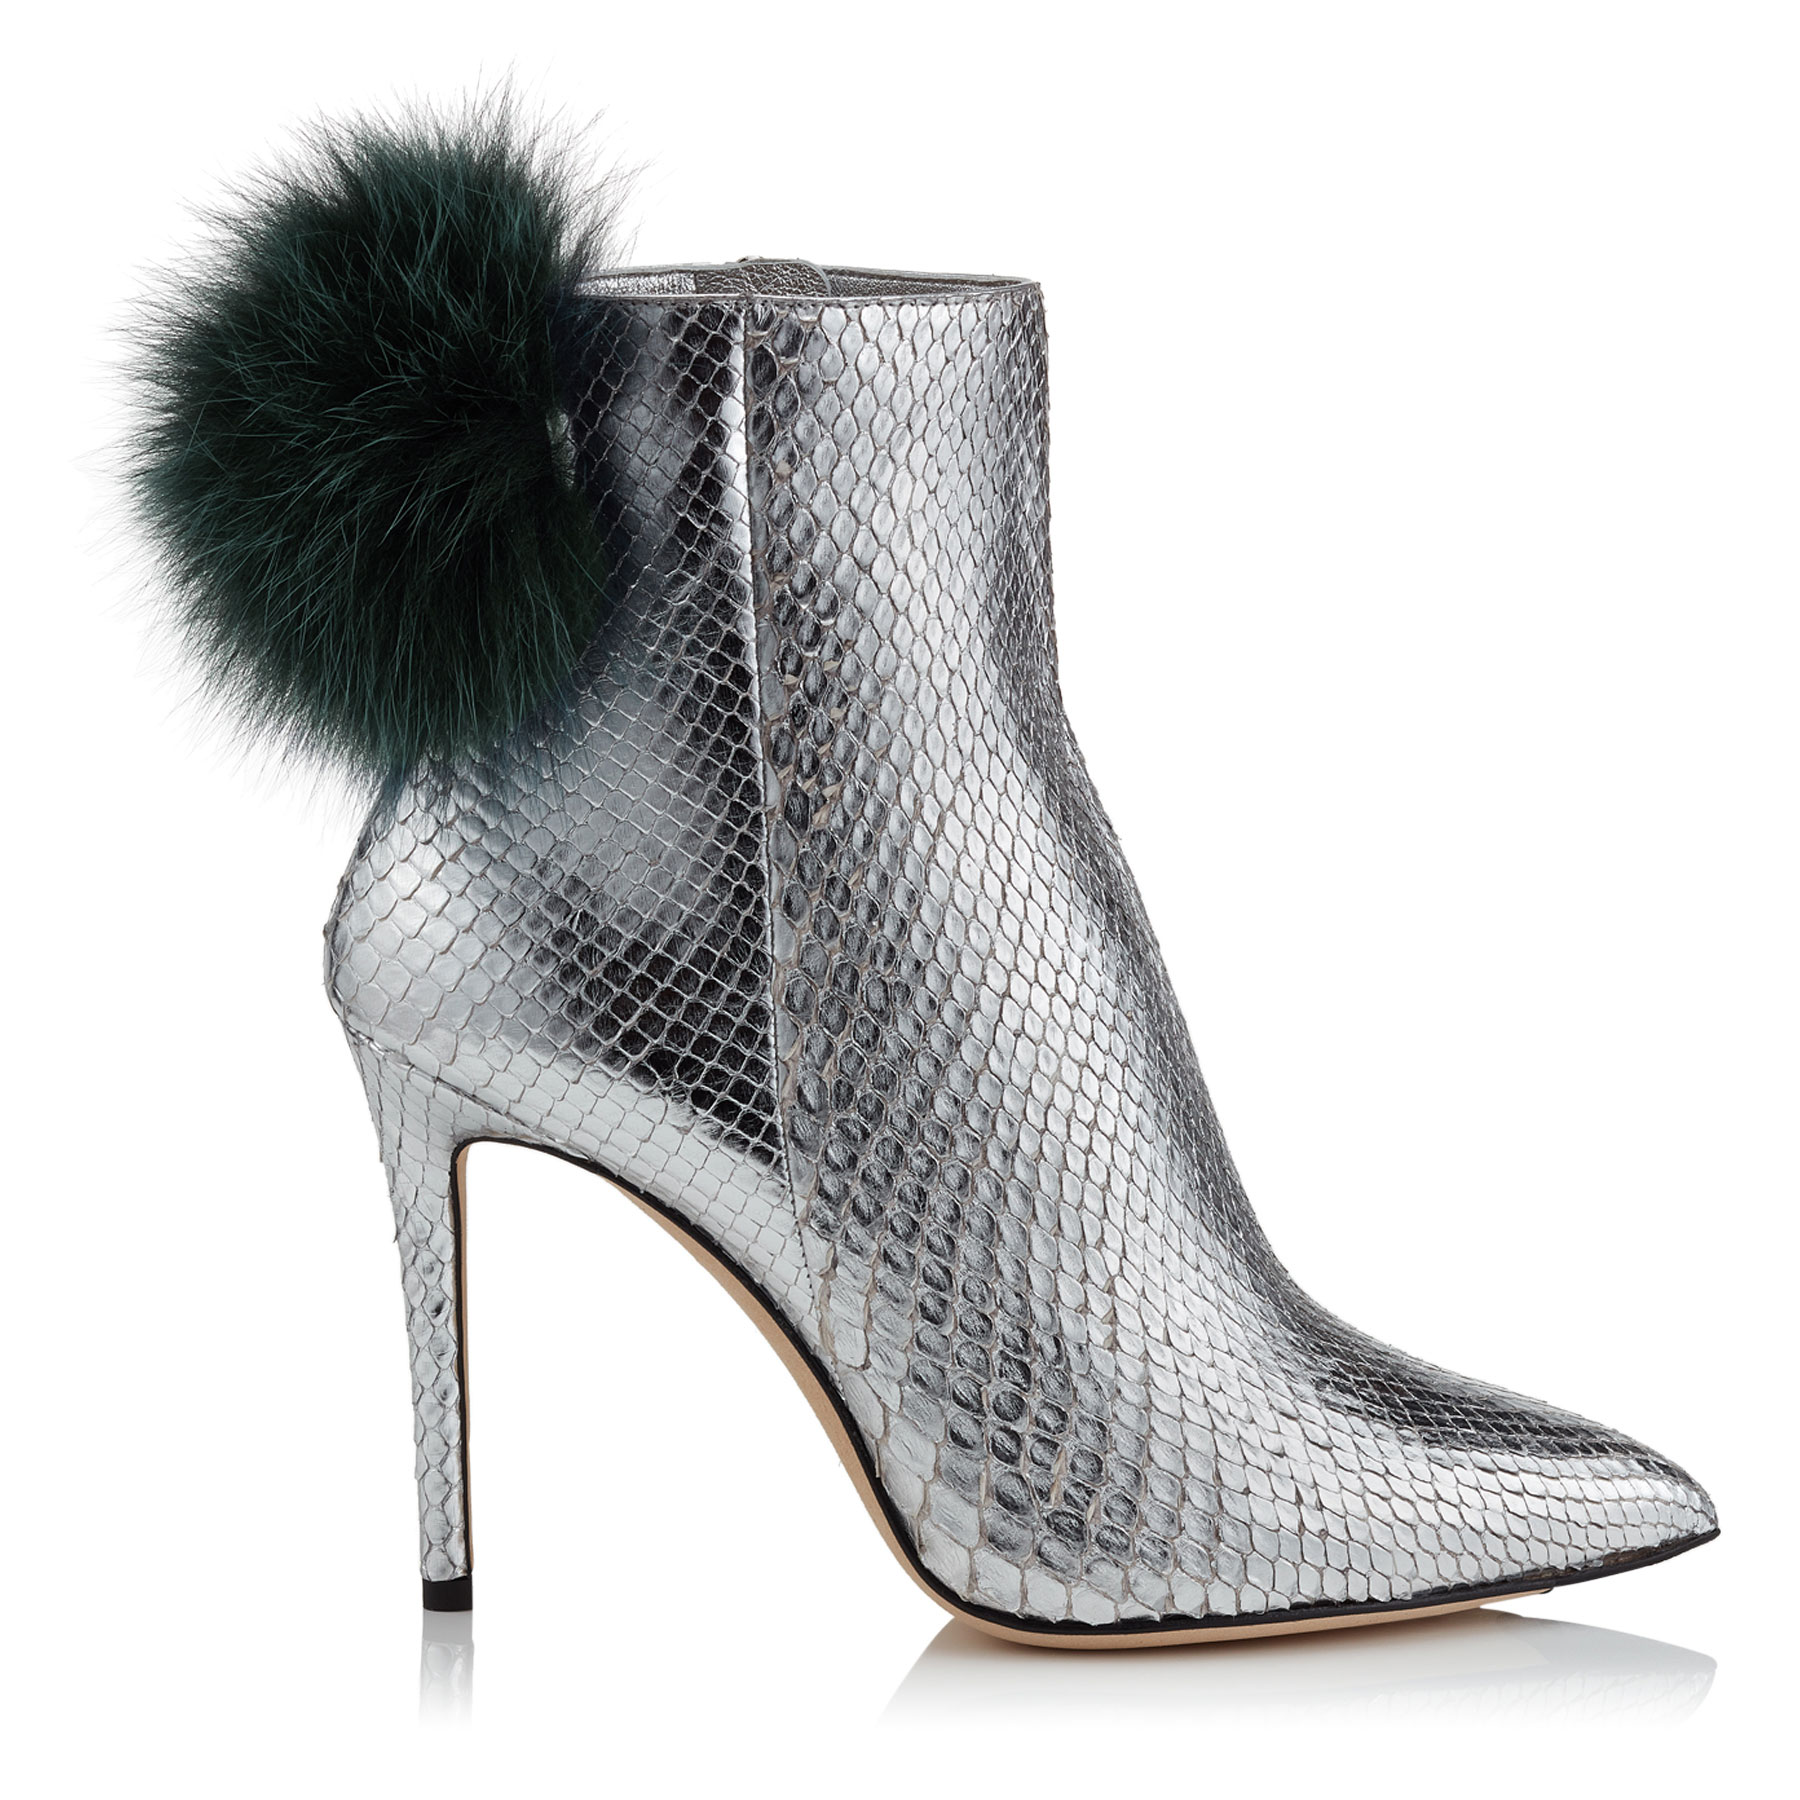 TESLER 100 Silver Python Booties with Bottle Green Fox Fur Pom Poms by Jimmy Choo